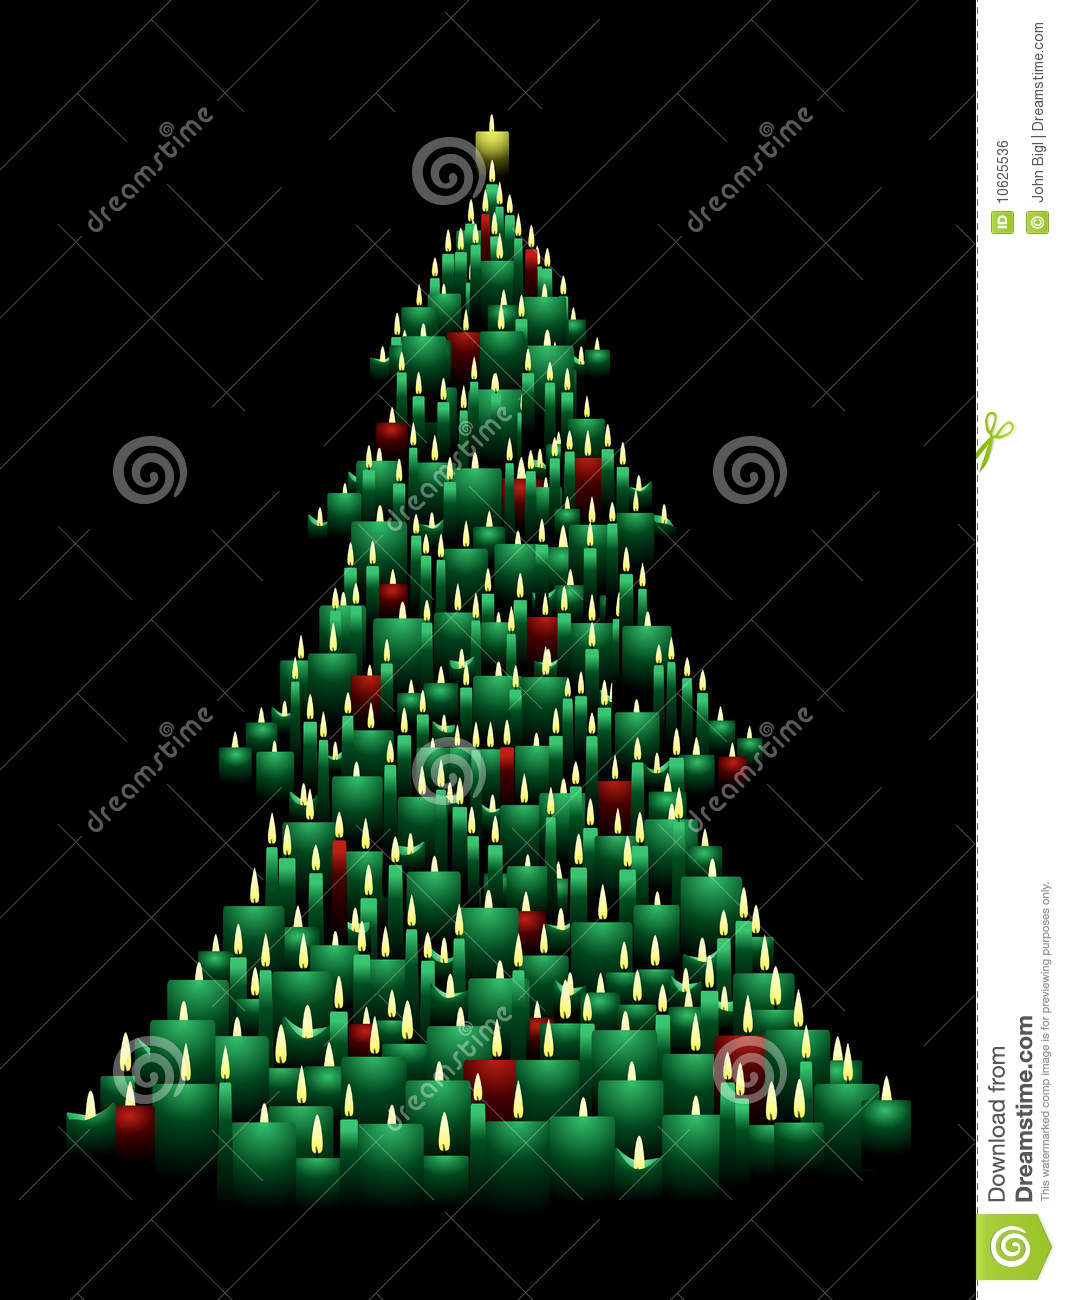 Christmas tree candles clipart #14